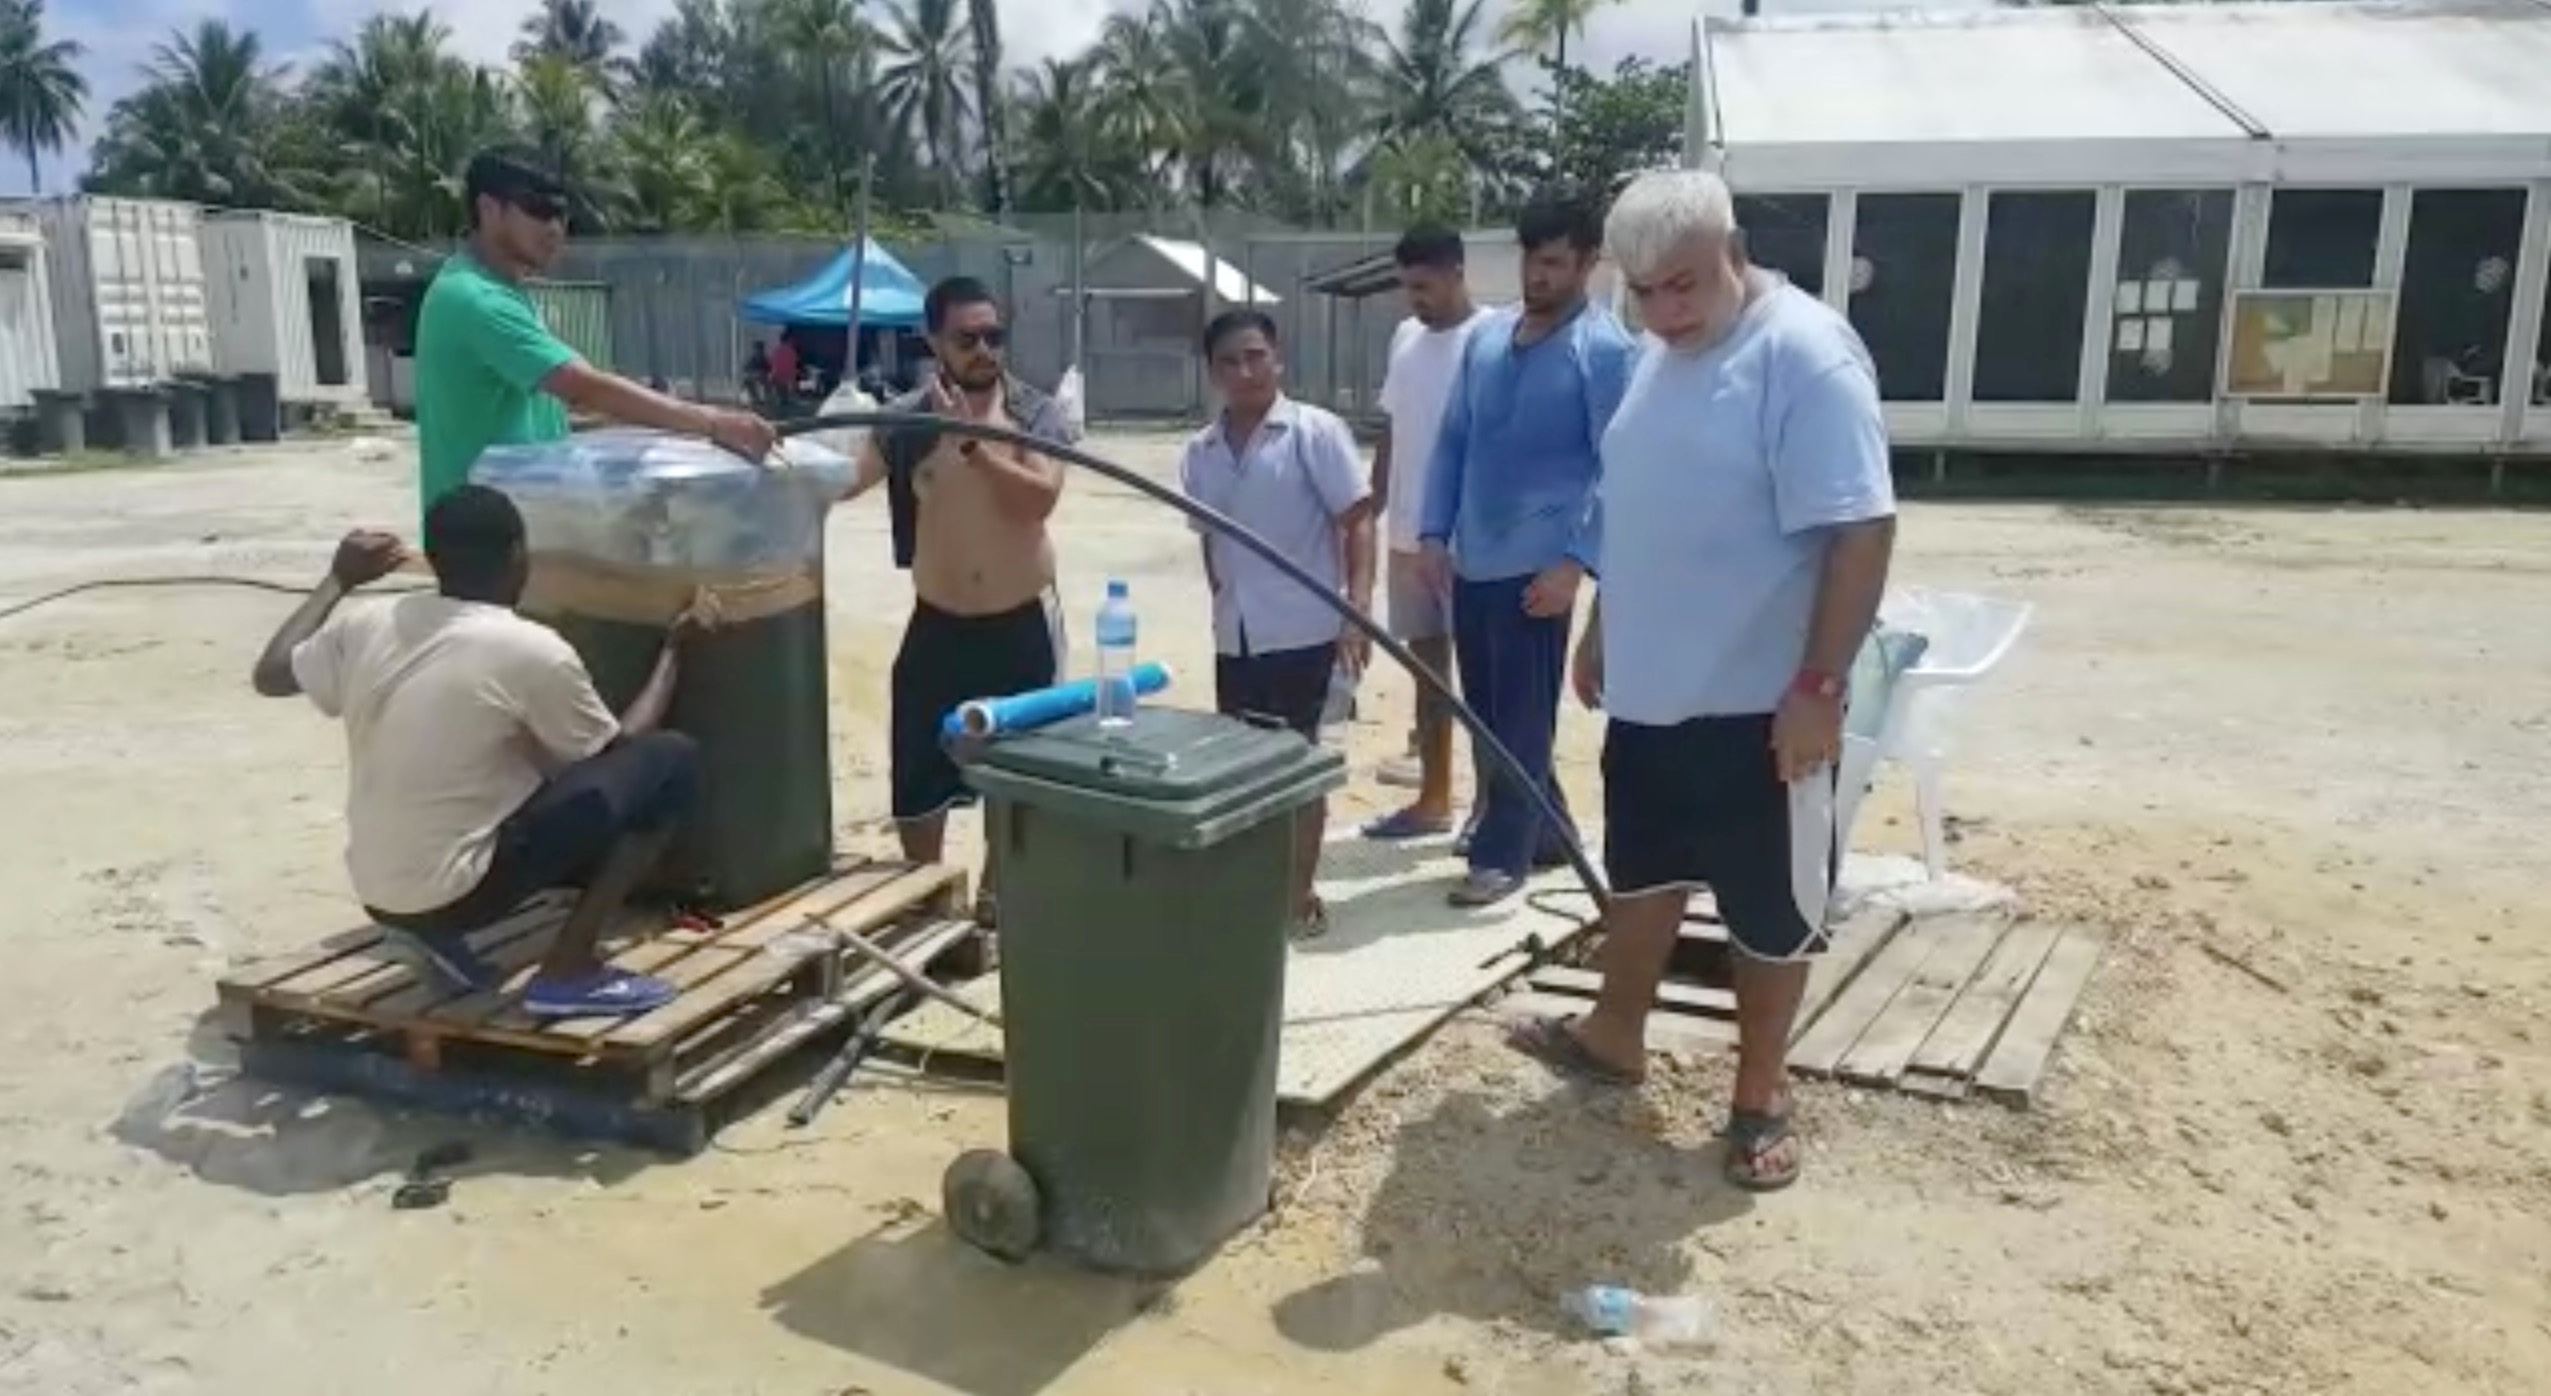 Asylum seekers detained on Manus Island modify a man-made well on Nov. 3, 2017.